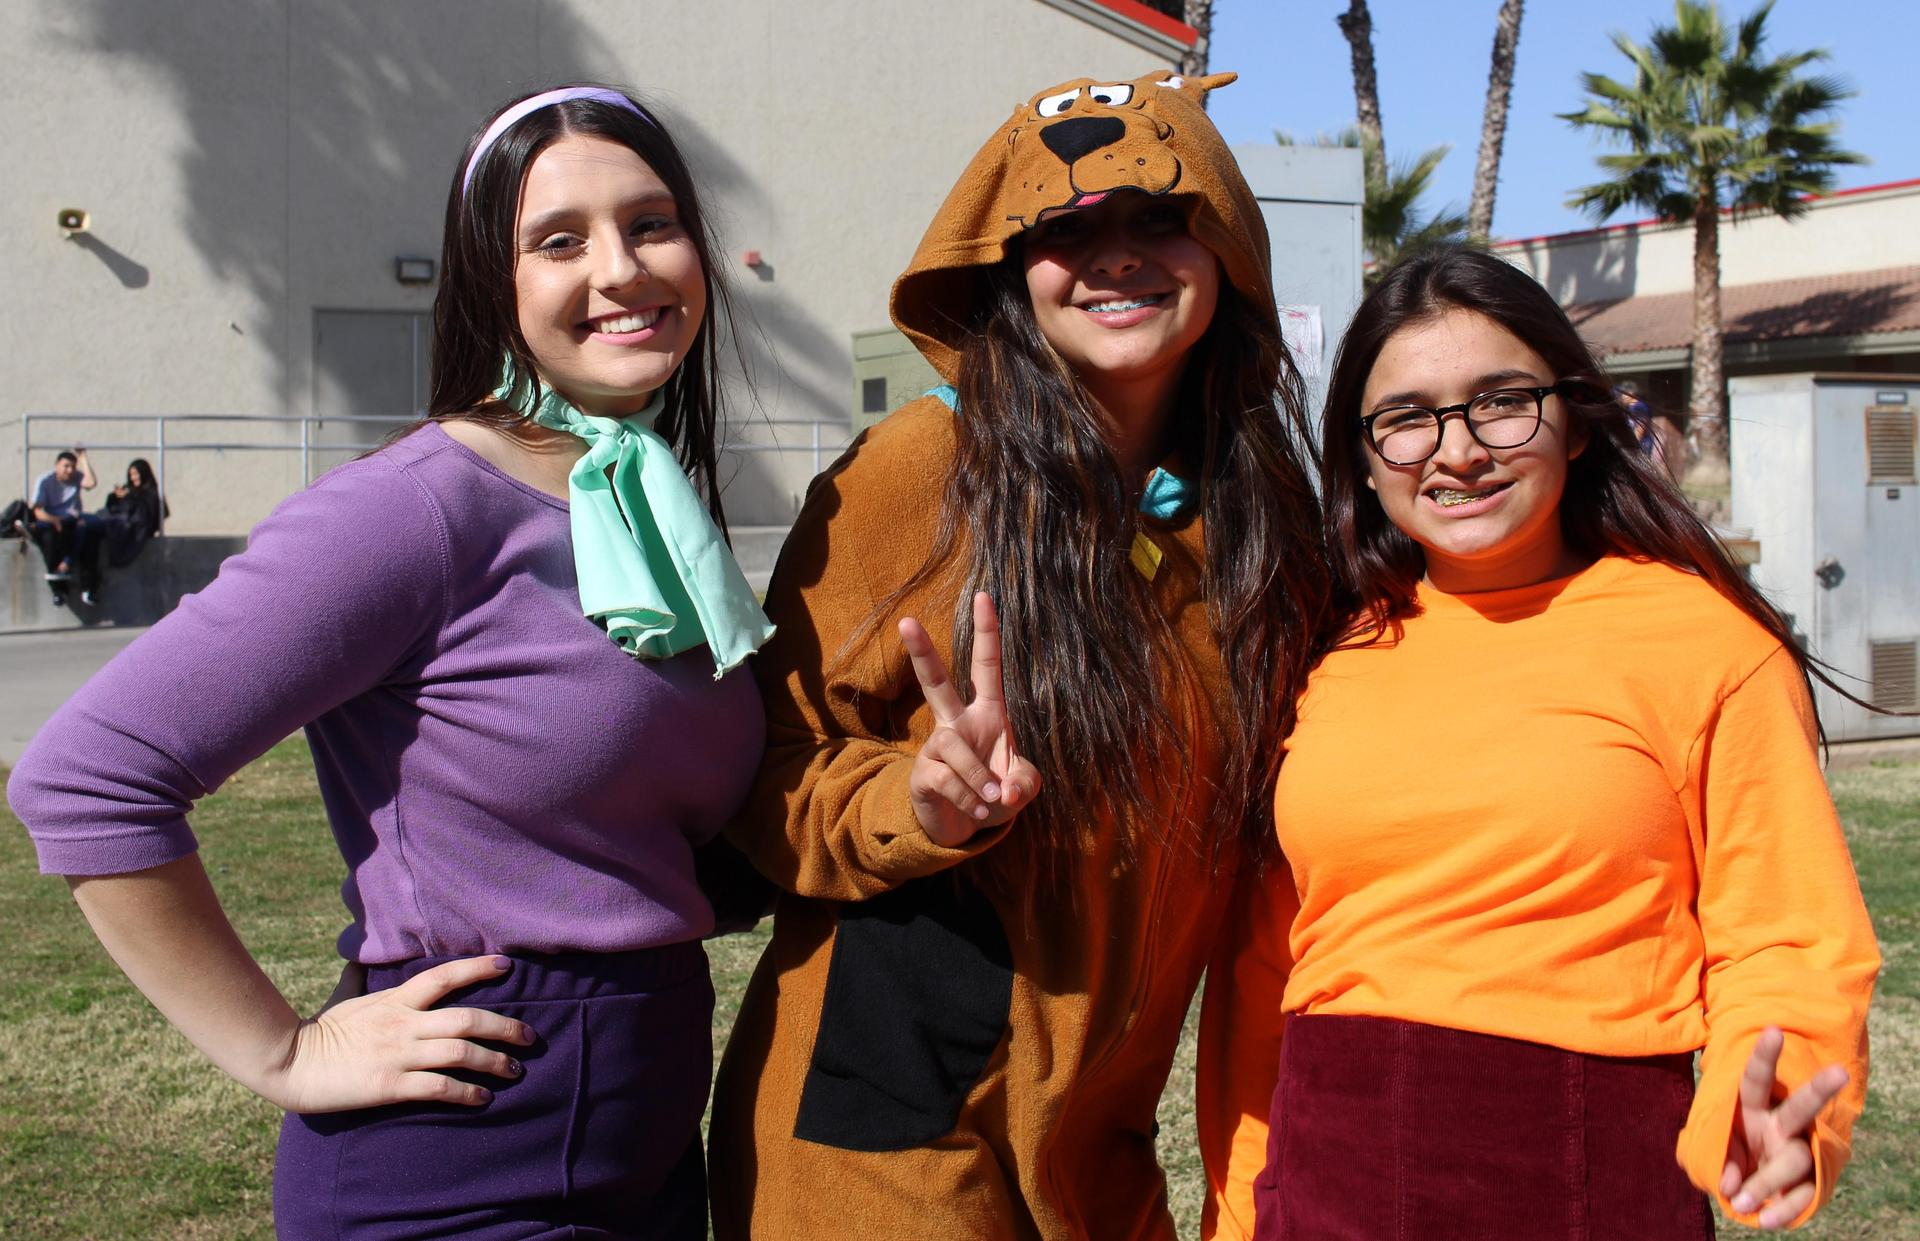 Mina Schwenck, Kim Benavides and Grace Sheppard as Scooby doo crew